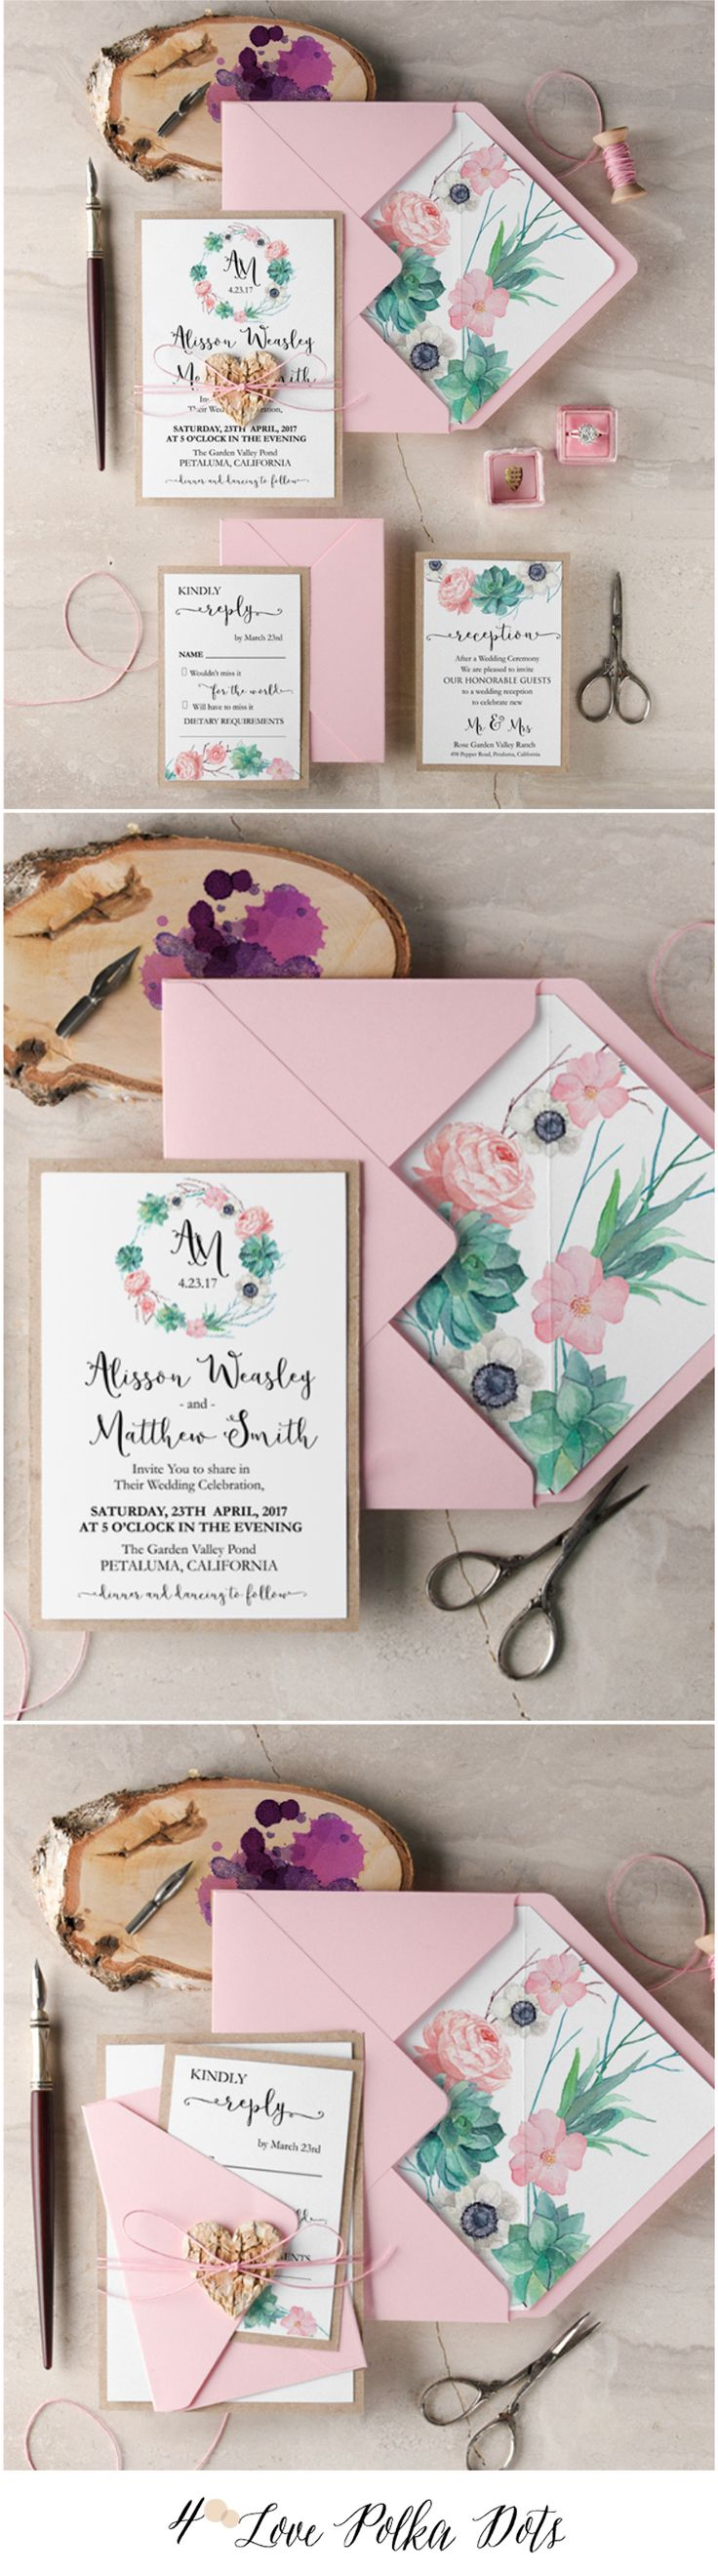 Rustic Eco Wedding Invitations with floral printing #pink #eco #weddinginvitations #floral #flowers #botanical #weddingideas #calligraphy